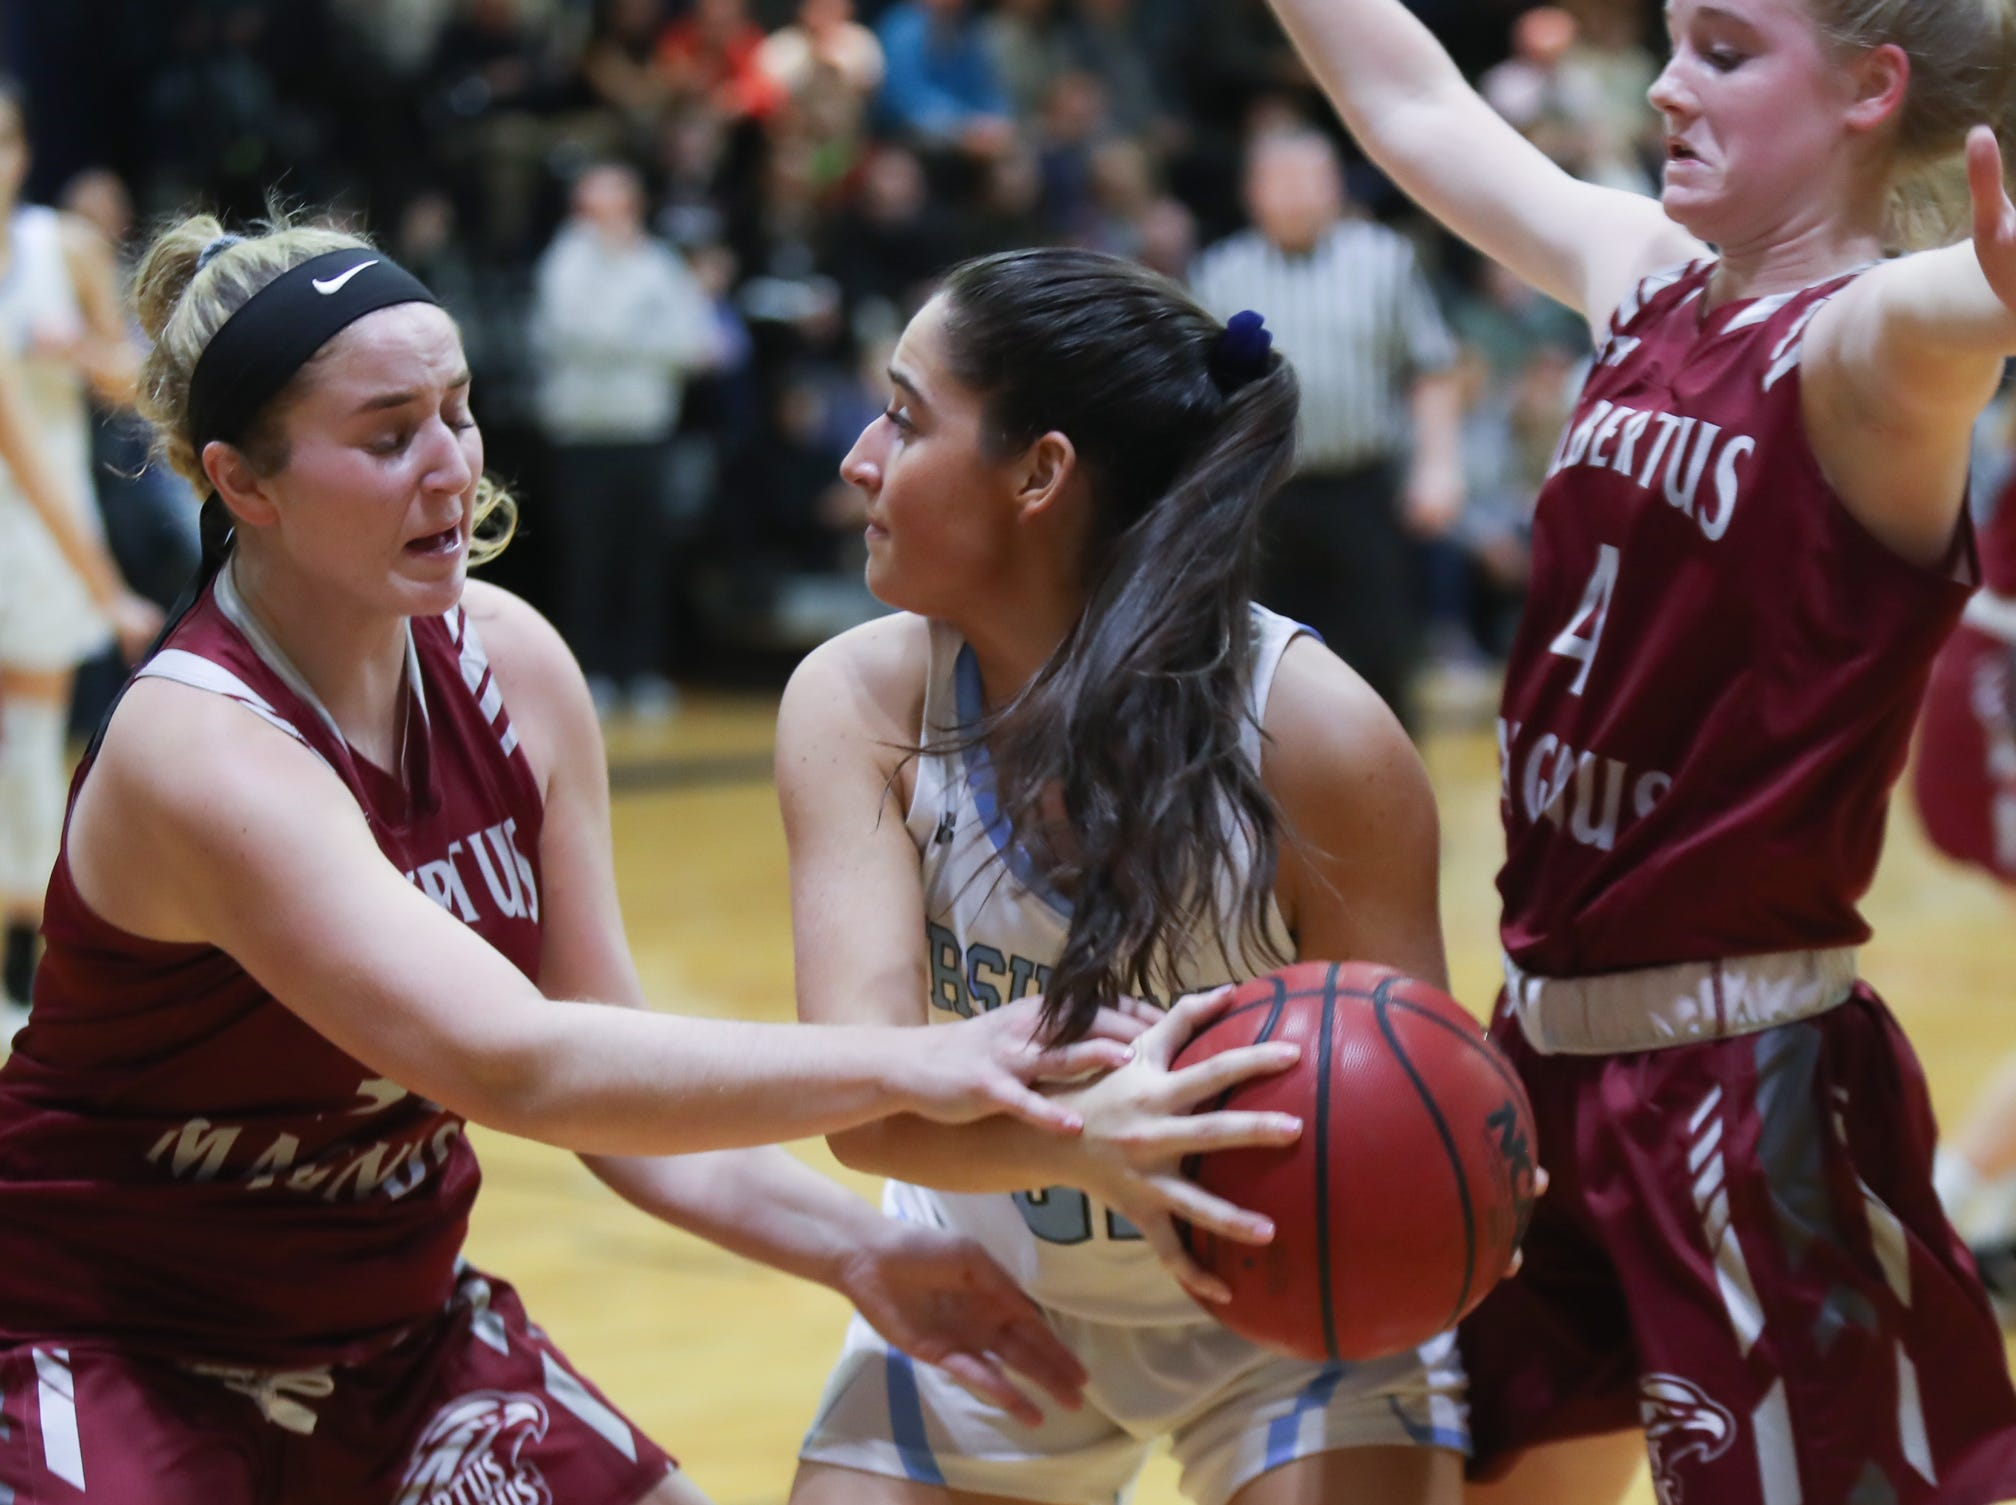 Ursuline's Carolina Brennan (21) is boxed in by Albertus' Chloe Cavallo (34) and Sierra Linnin (4) during girls varsity basketball action at The Ursuline School in New Rochelle on Wednesday, January 9, 2019.  Ursuline defeated Albertus 68-48.